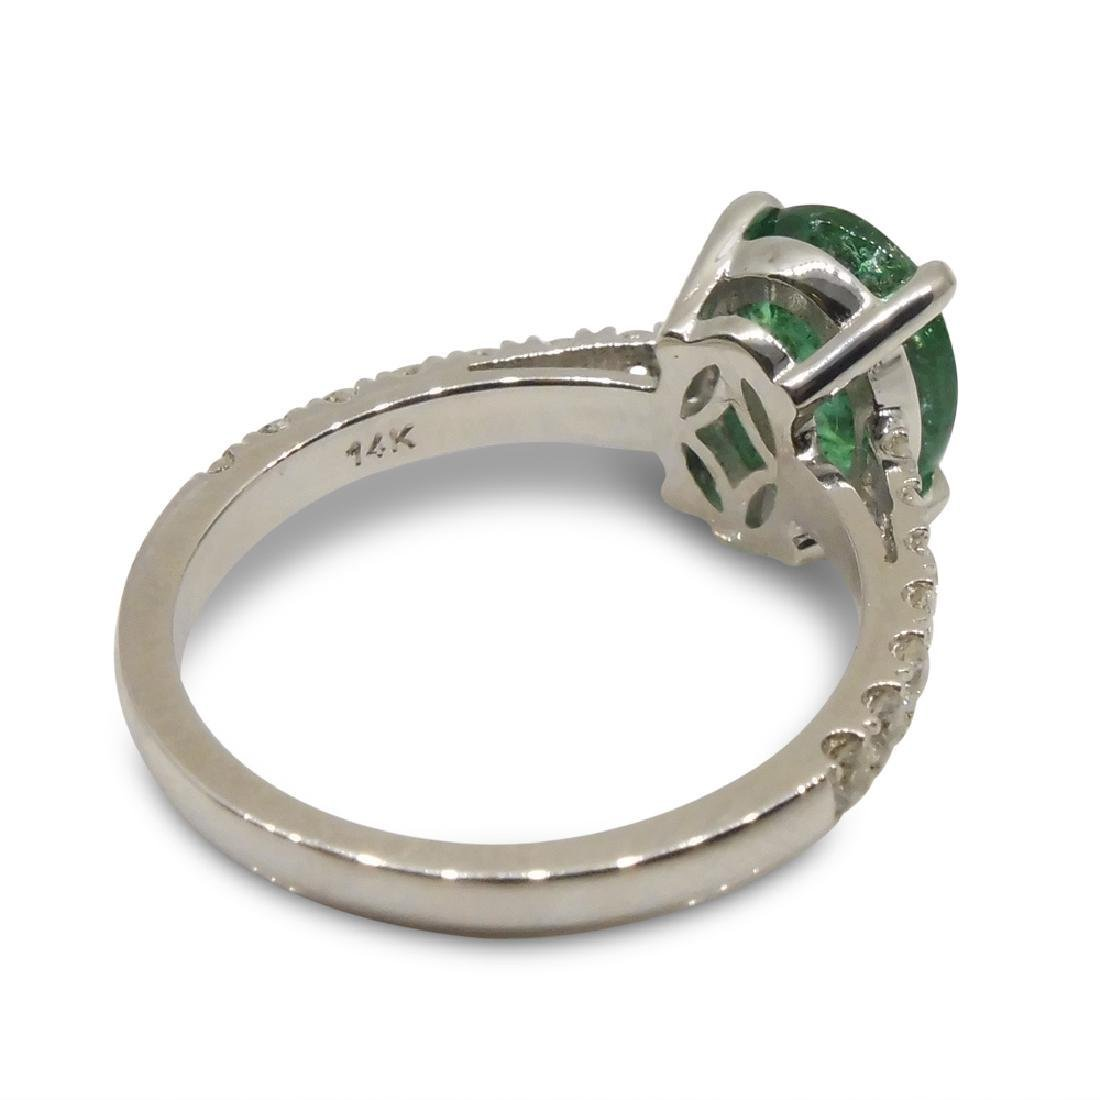 14K White Gold Emerald Diamond Ring, 1.82ct - 8